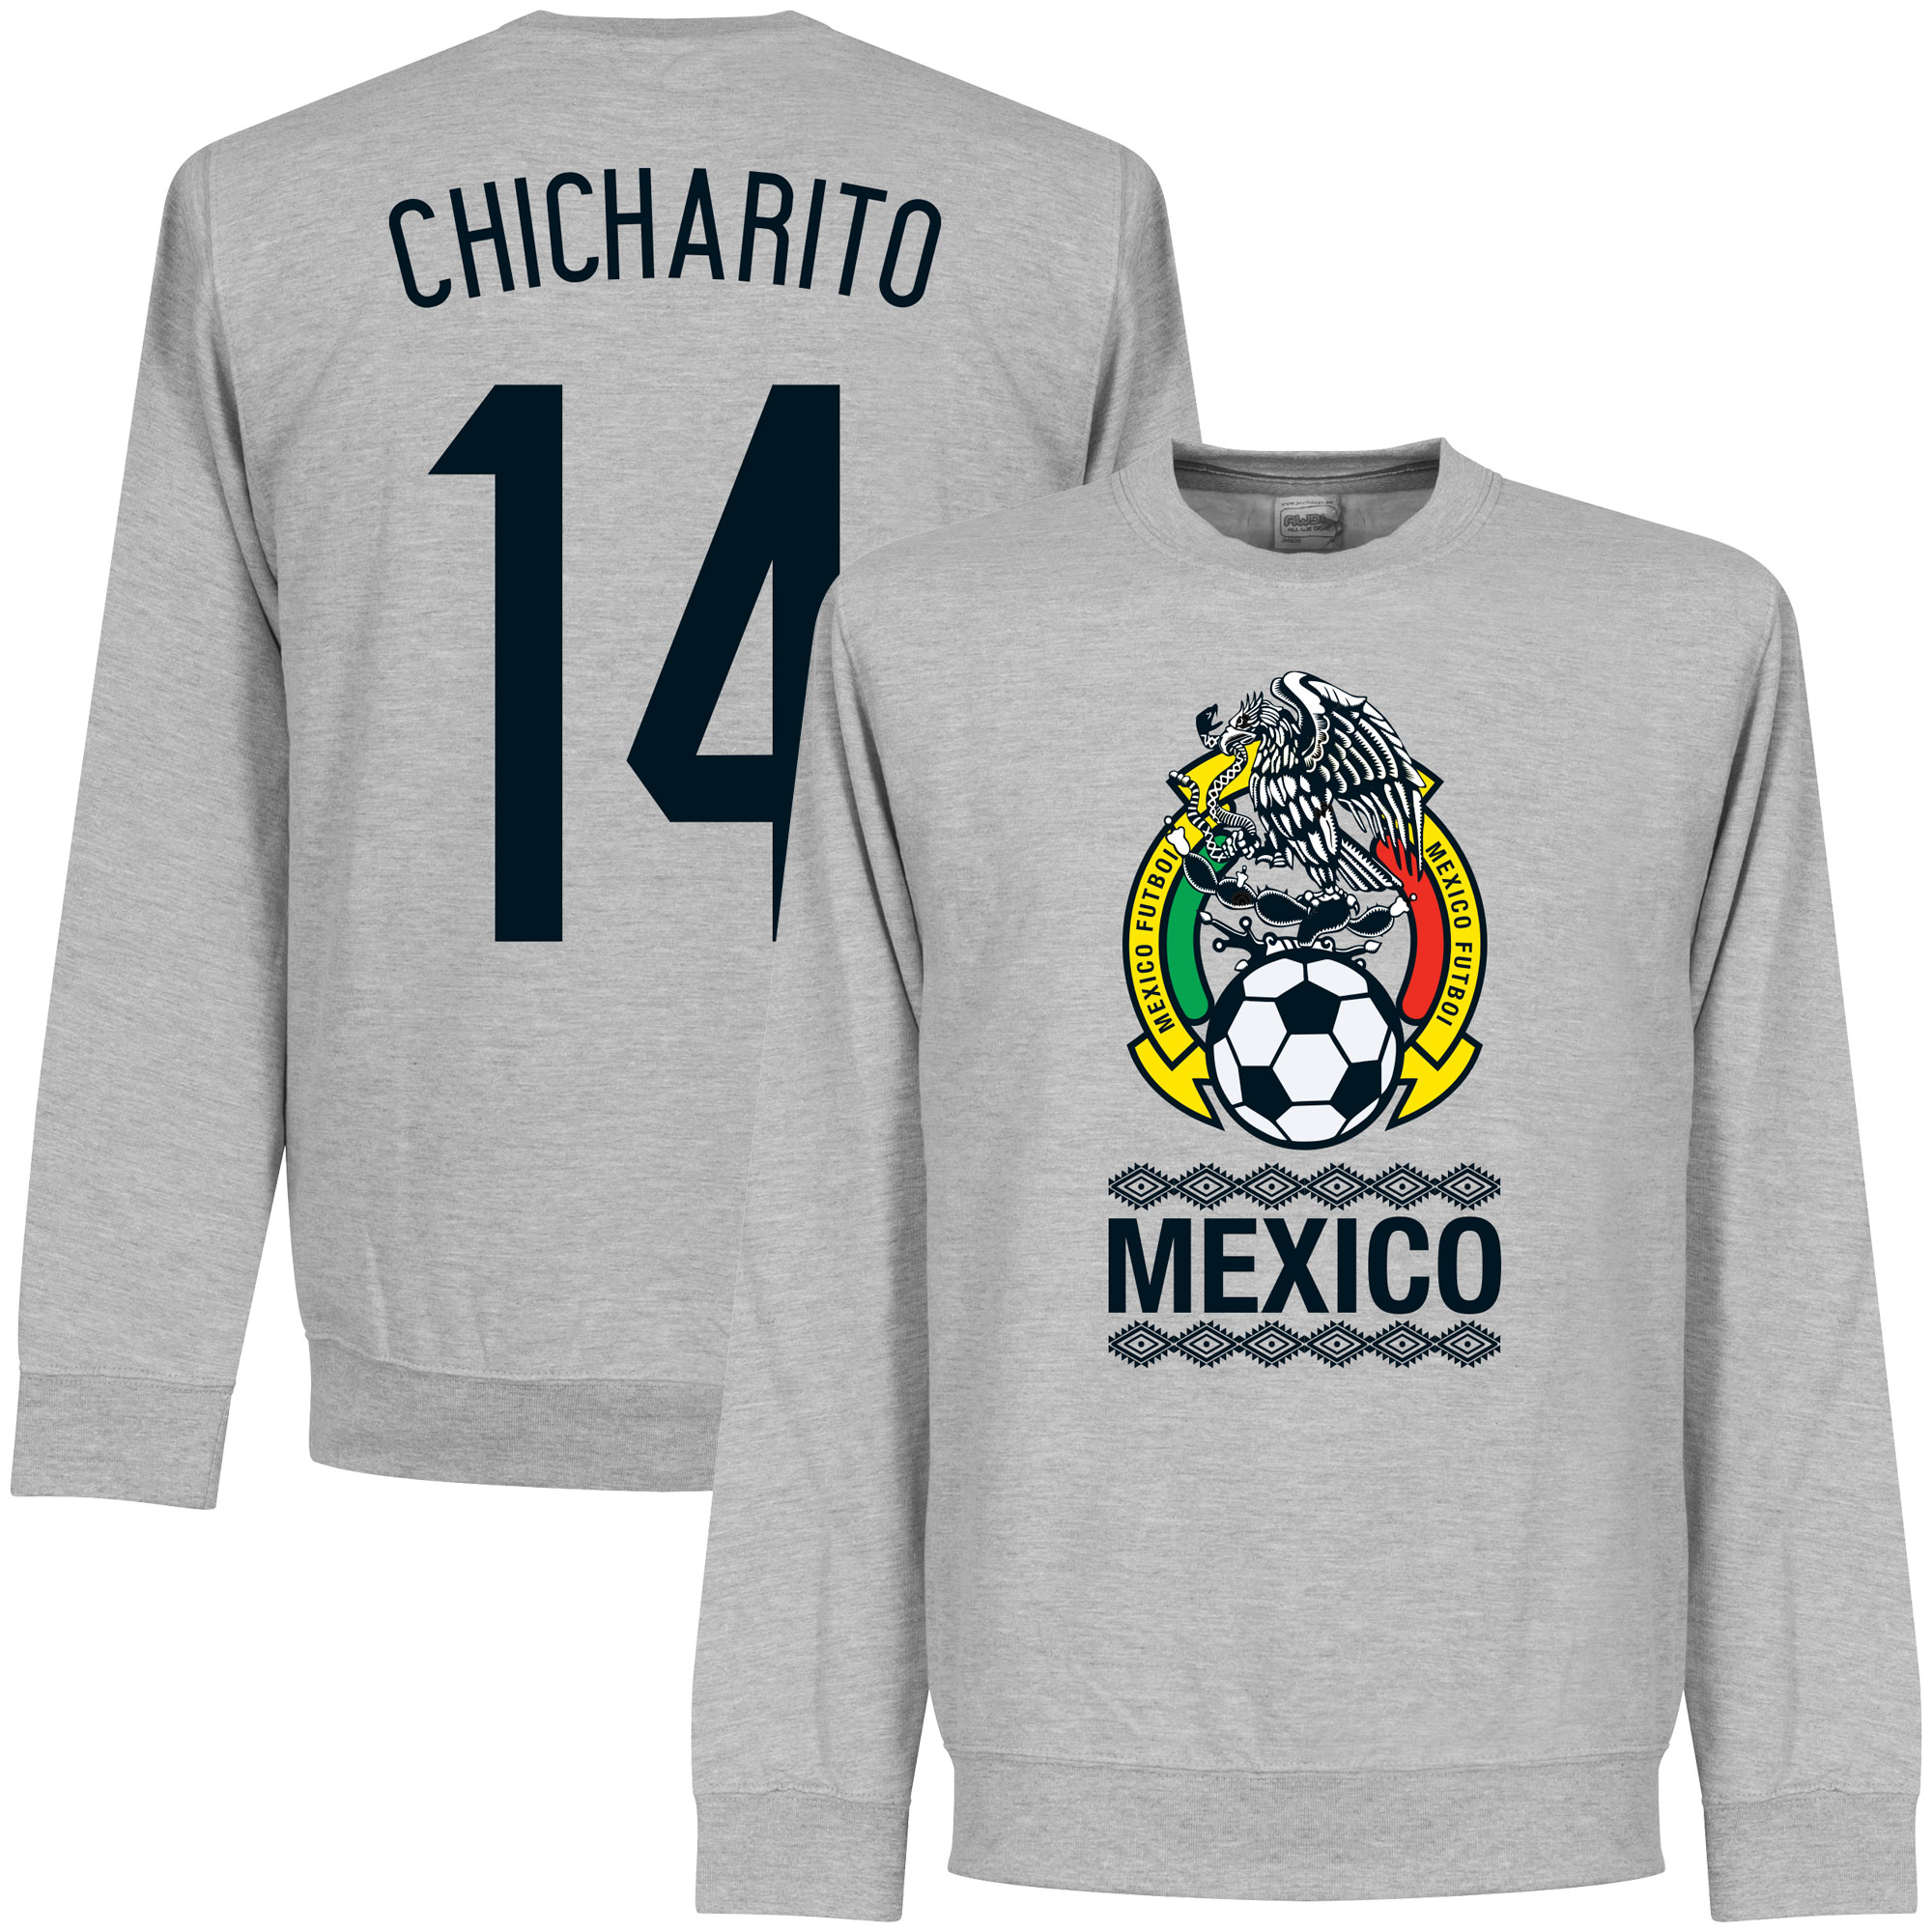 Mexico Chicharito Sweatshirt - Grey - L